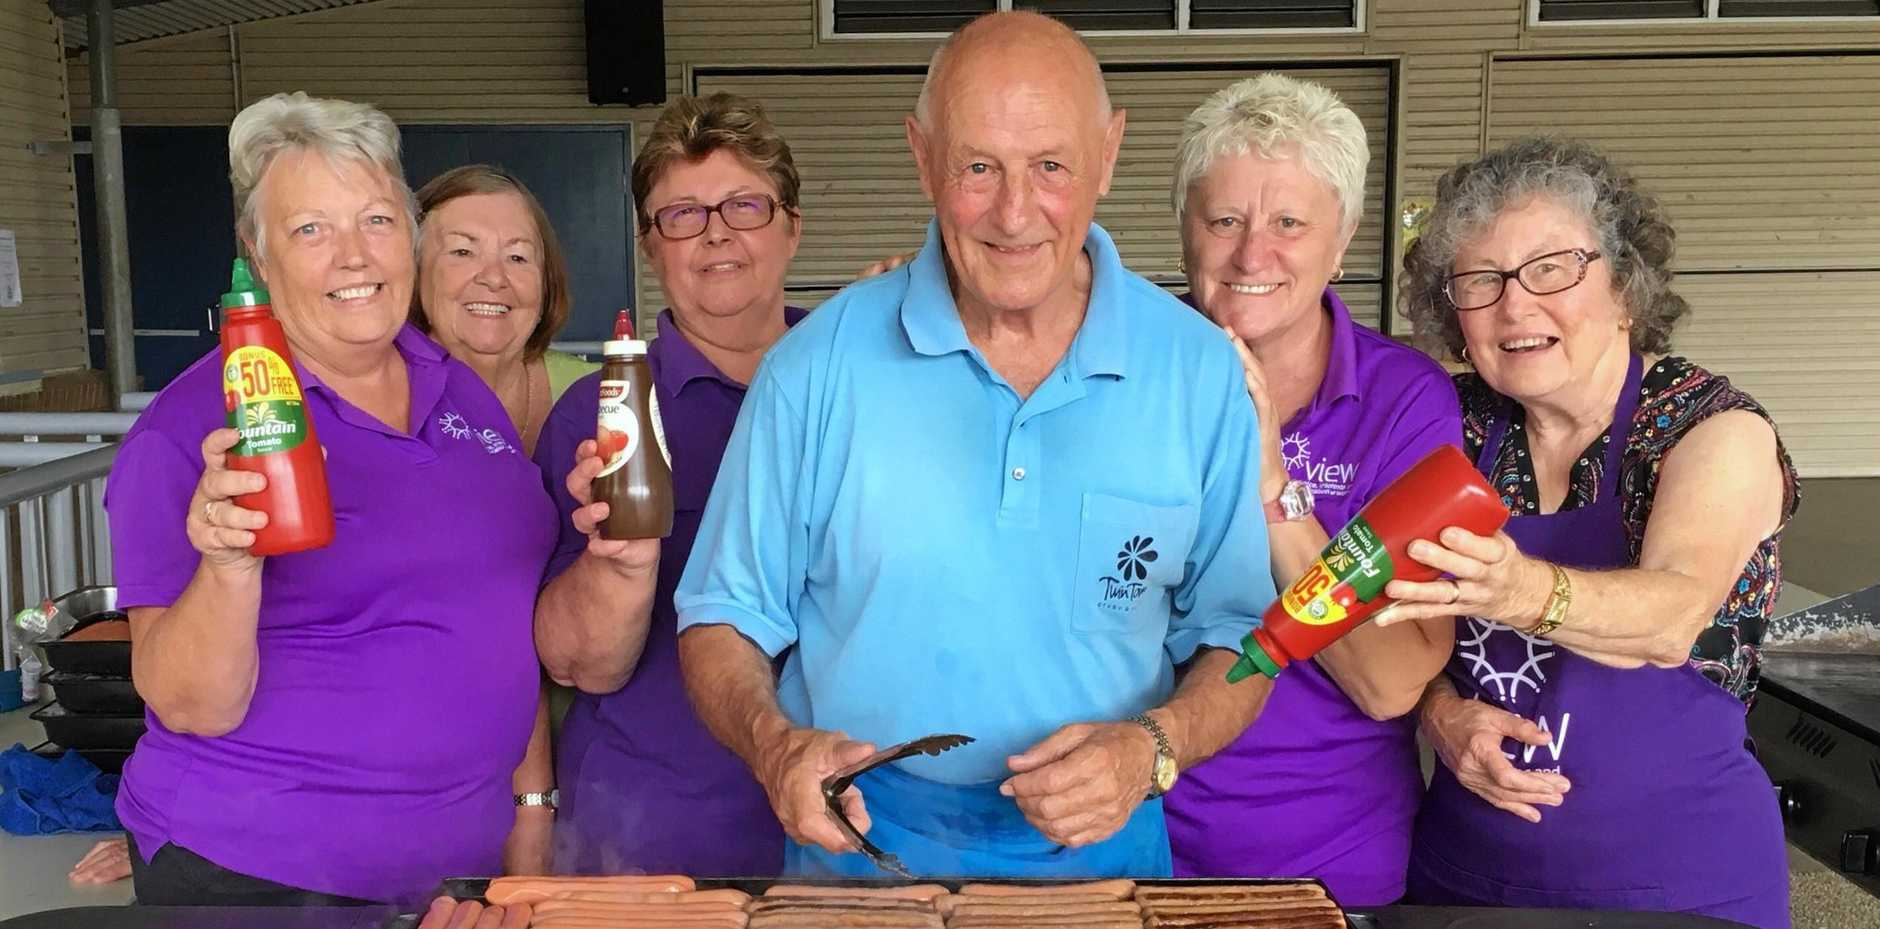 SAUSAGE SIZZLERS: Twin Towns Evening VIEW ladies Jill, Dot, Trudy, Rosie, Fay and (centre) Twin Towns Services Club board member, Ross O'Leary.